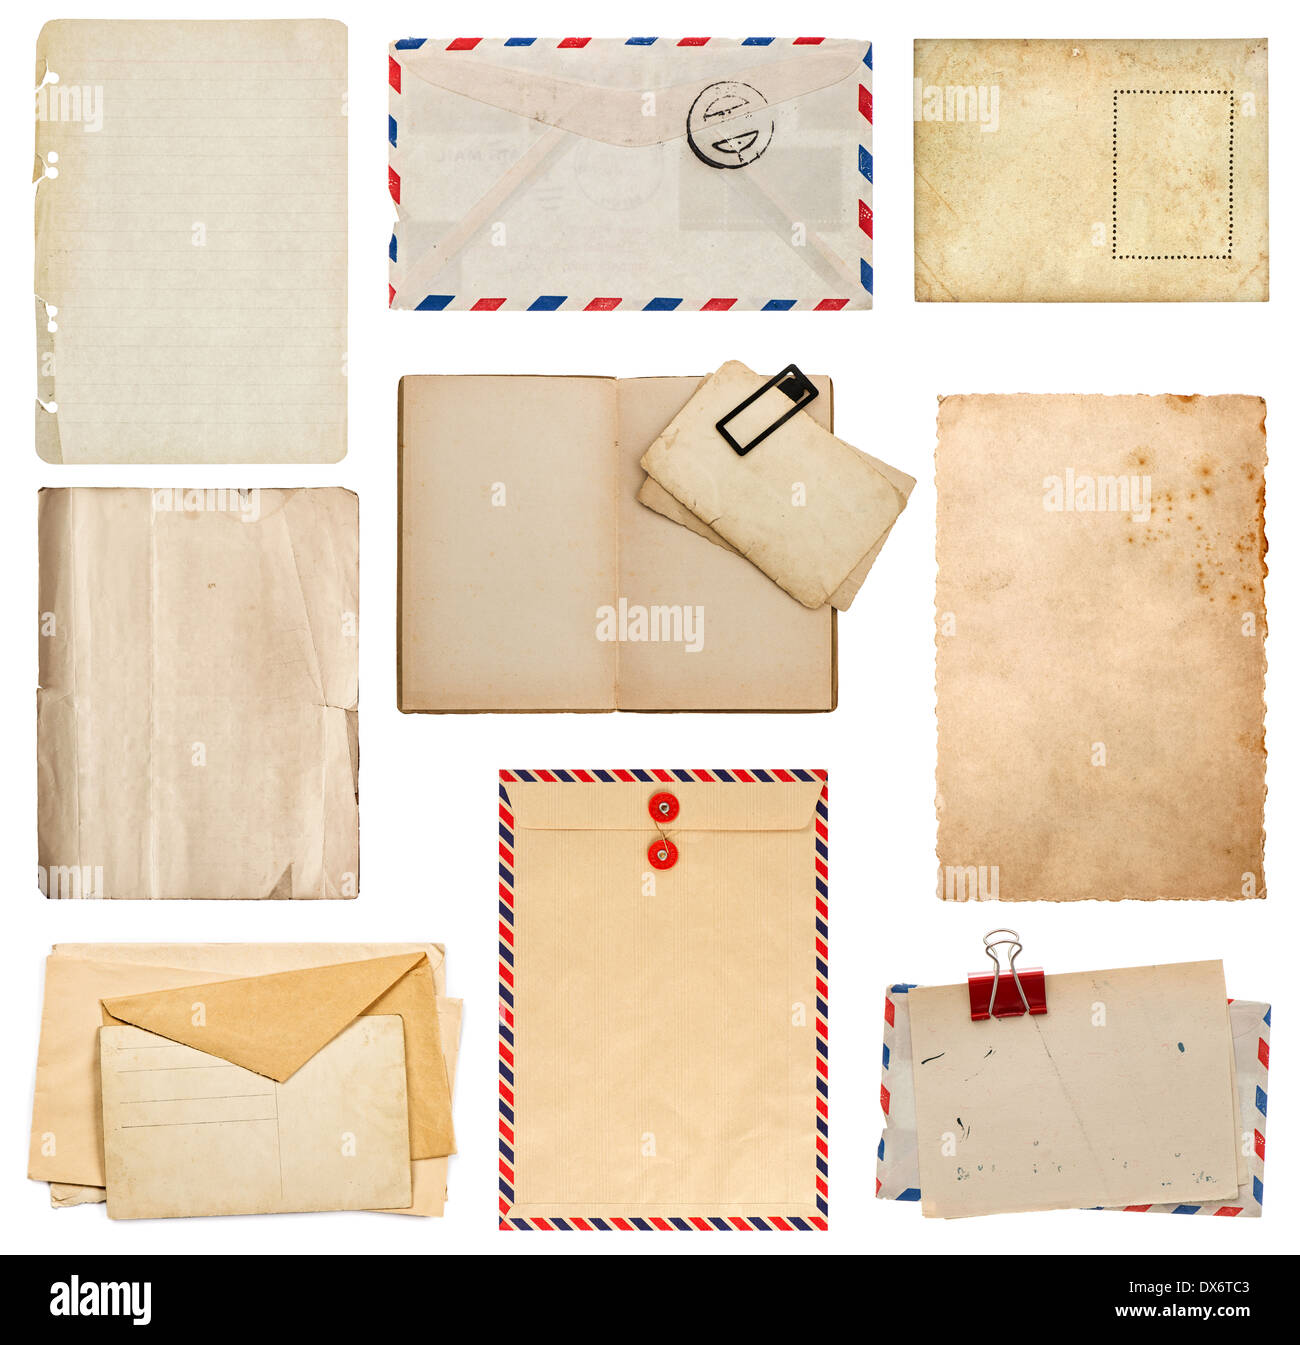 set of old paper sheets, book, envelope, card isolated on white background - Stock Image